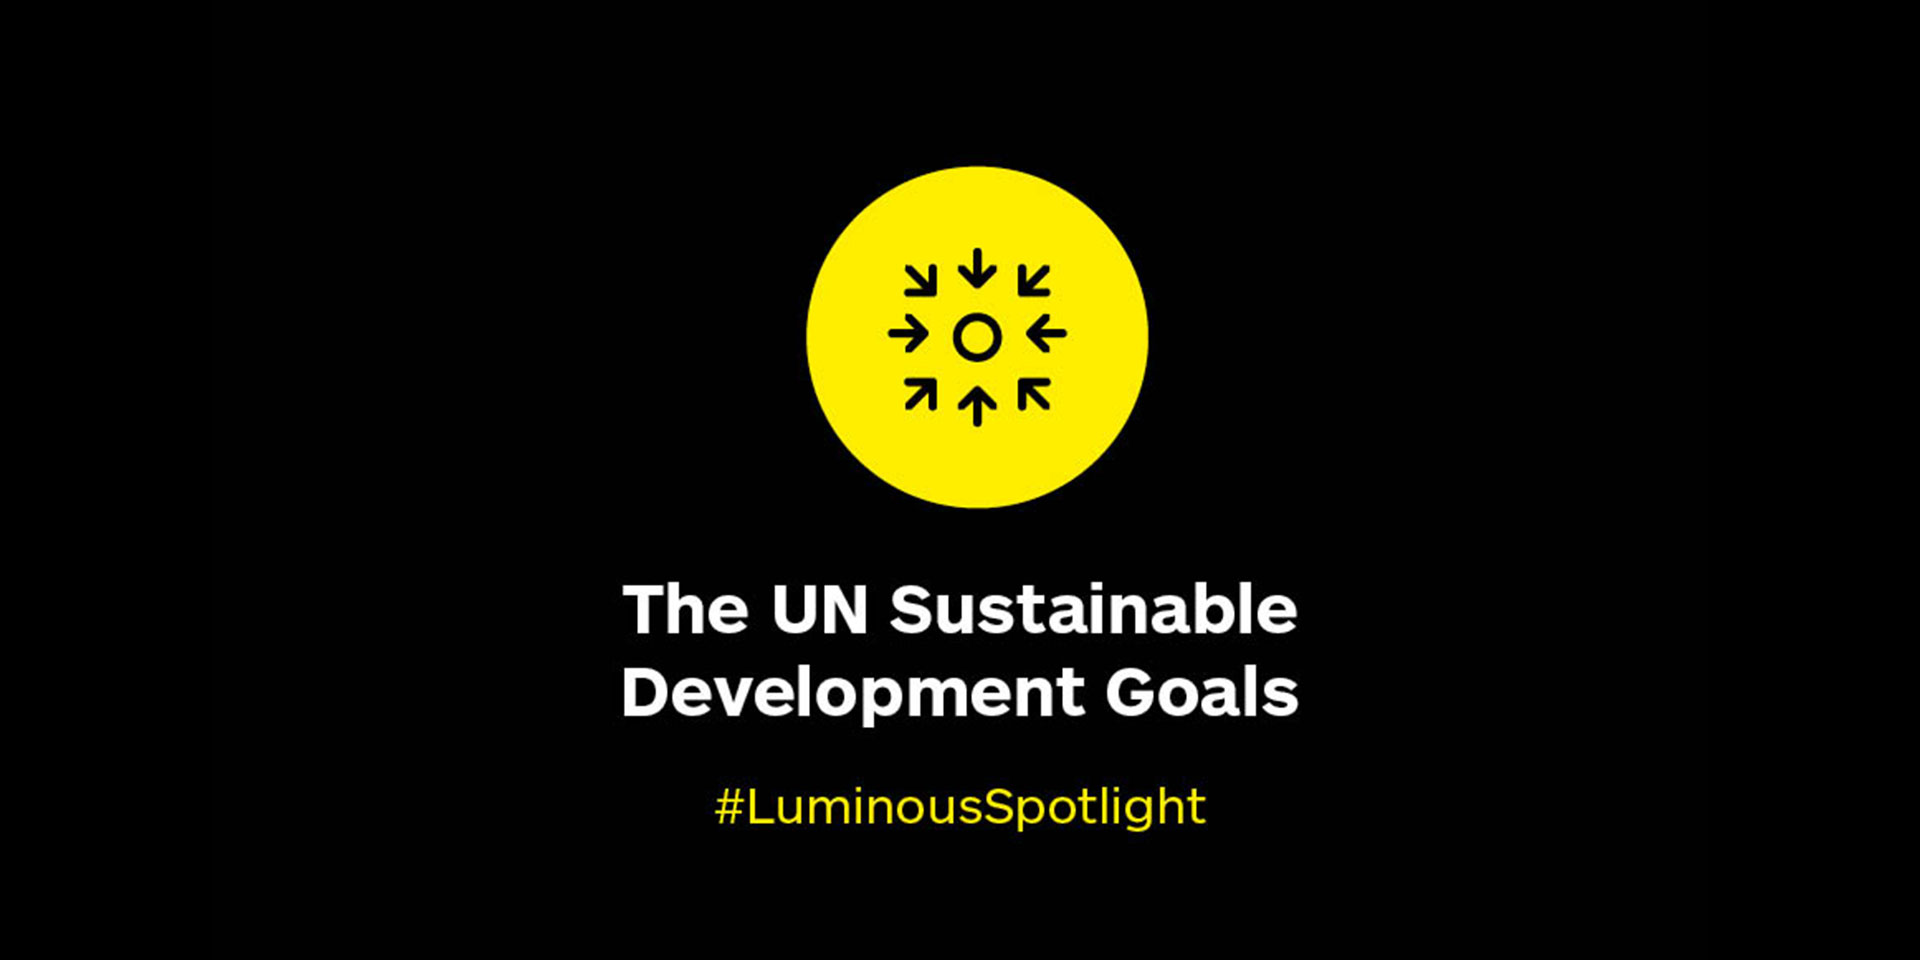 The UN Sustainable Development Goals – going local to accelerate progress